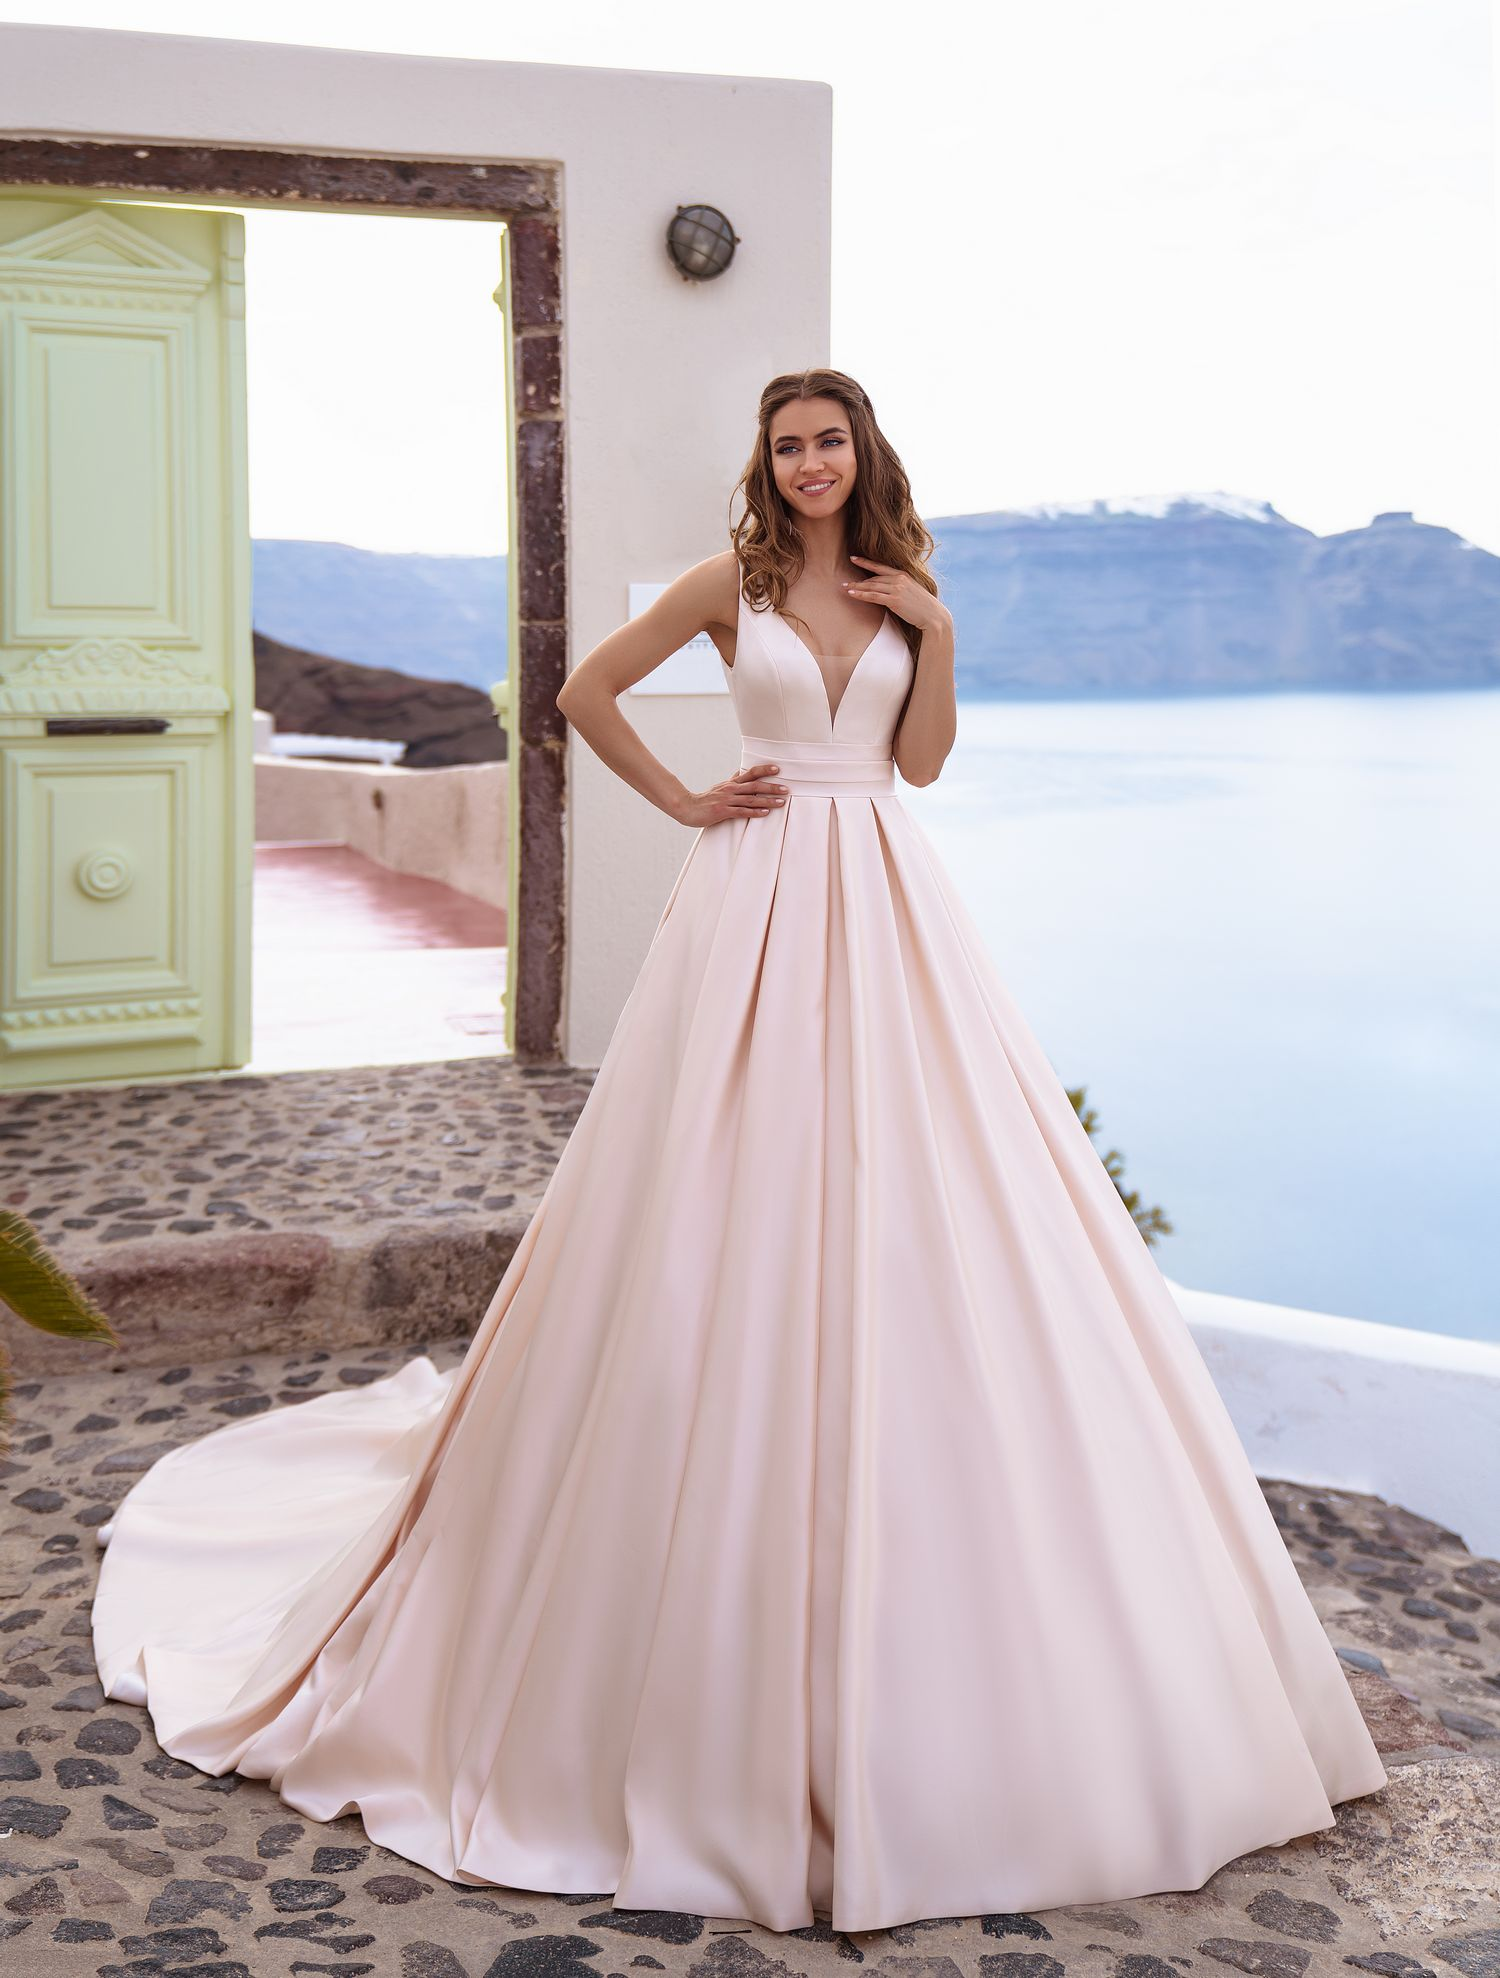 Wedding dress in the style of